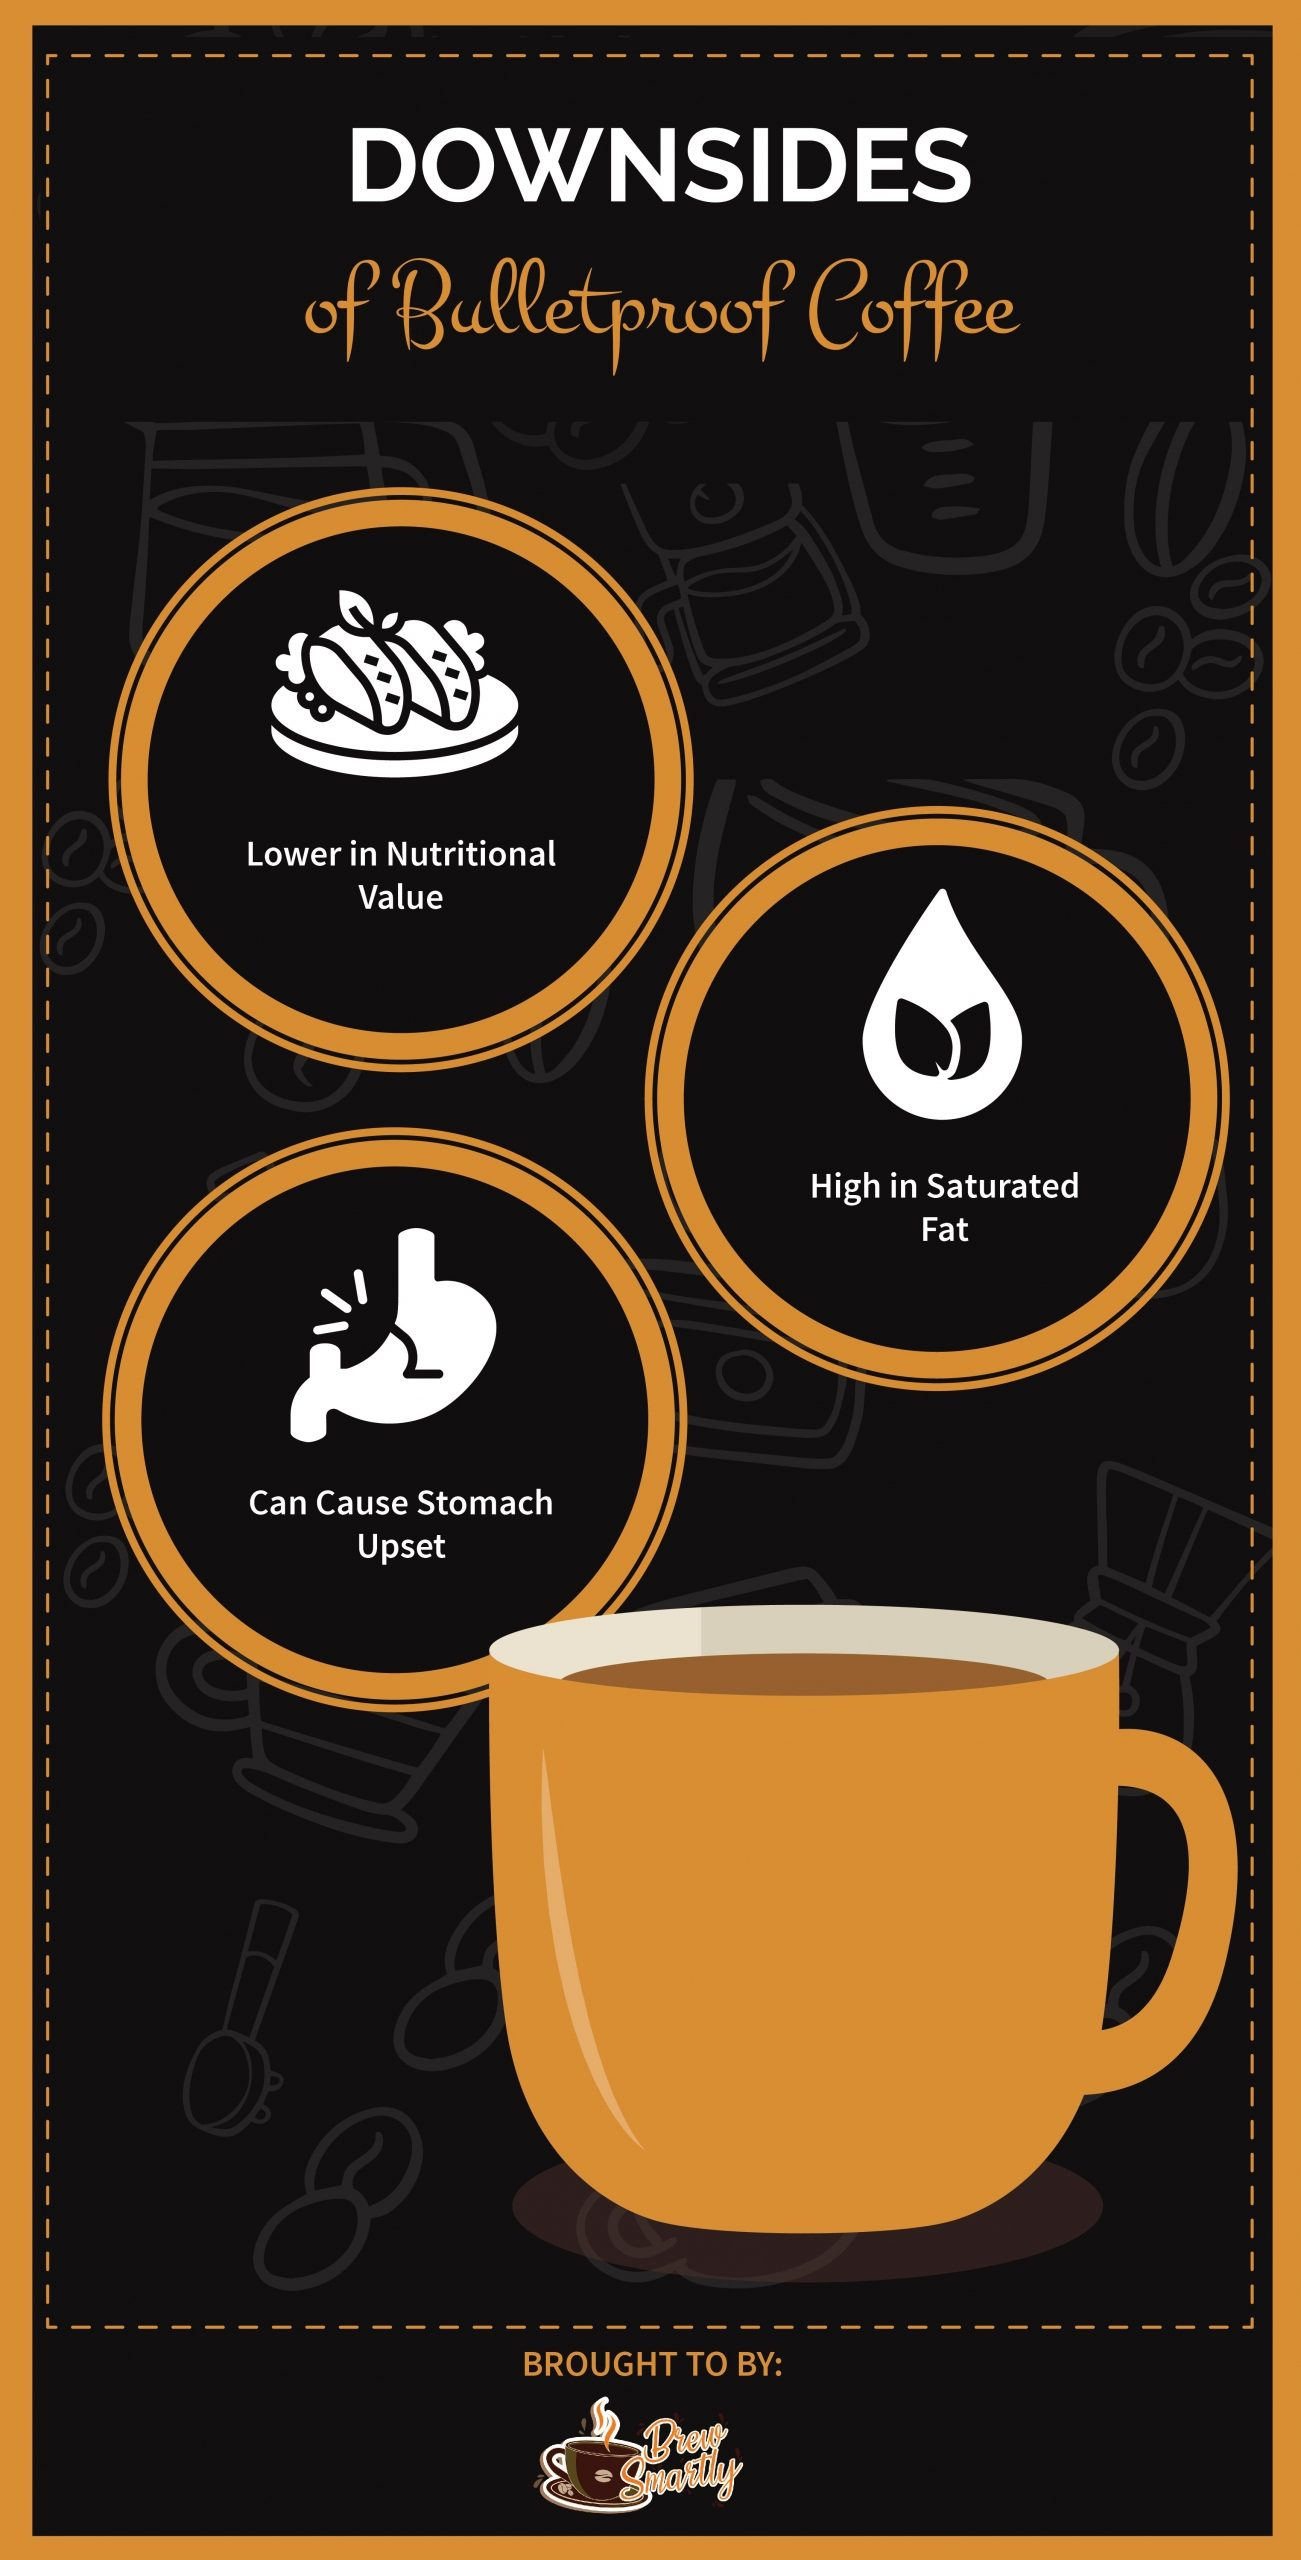 Drawbacks of Bulletproof Coffee